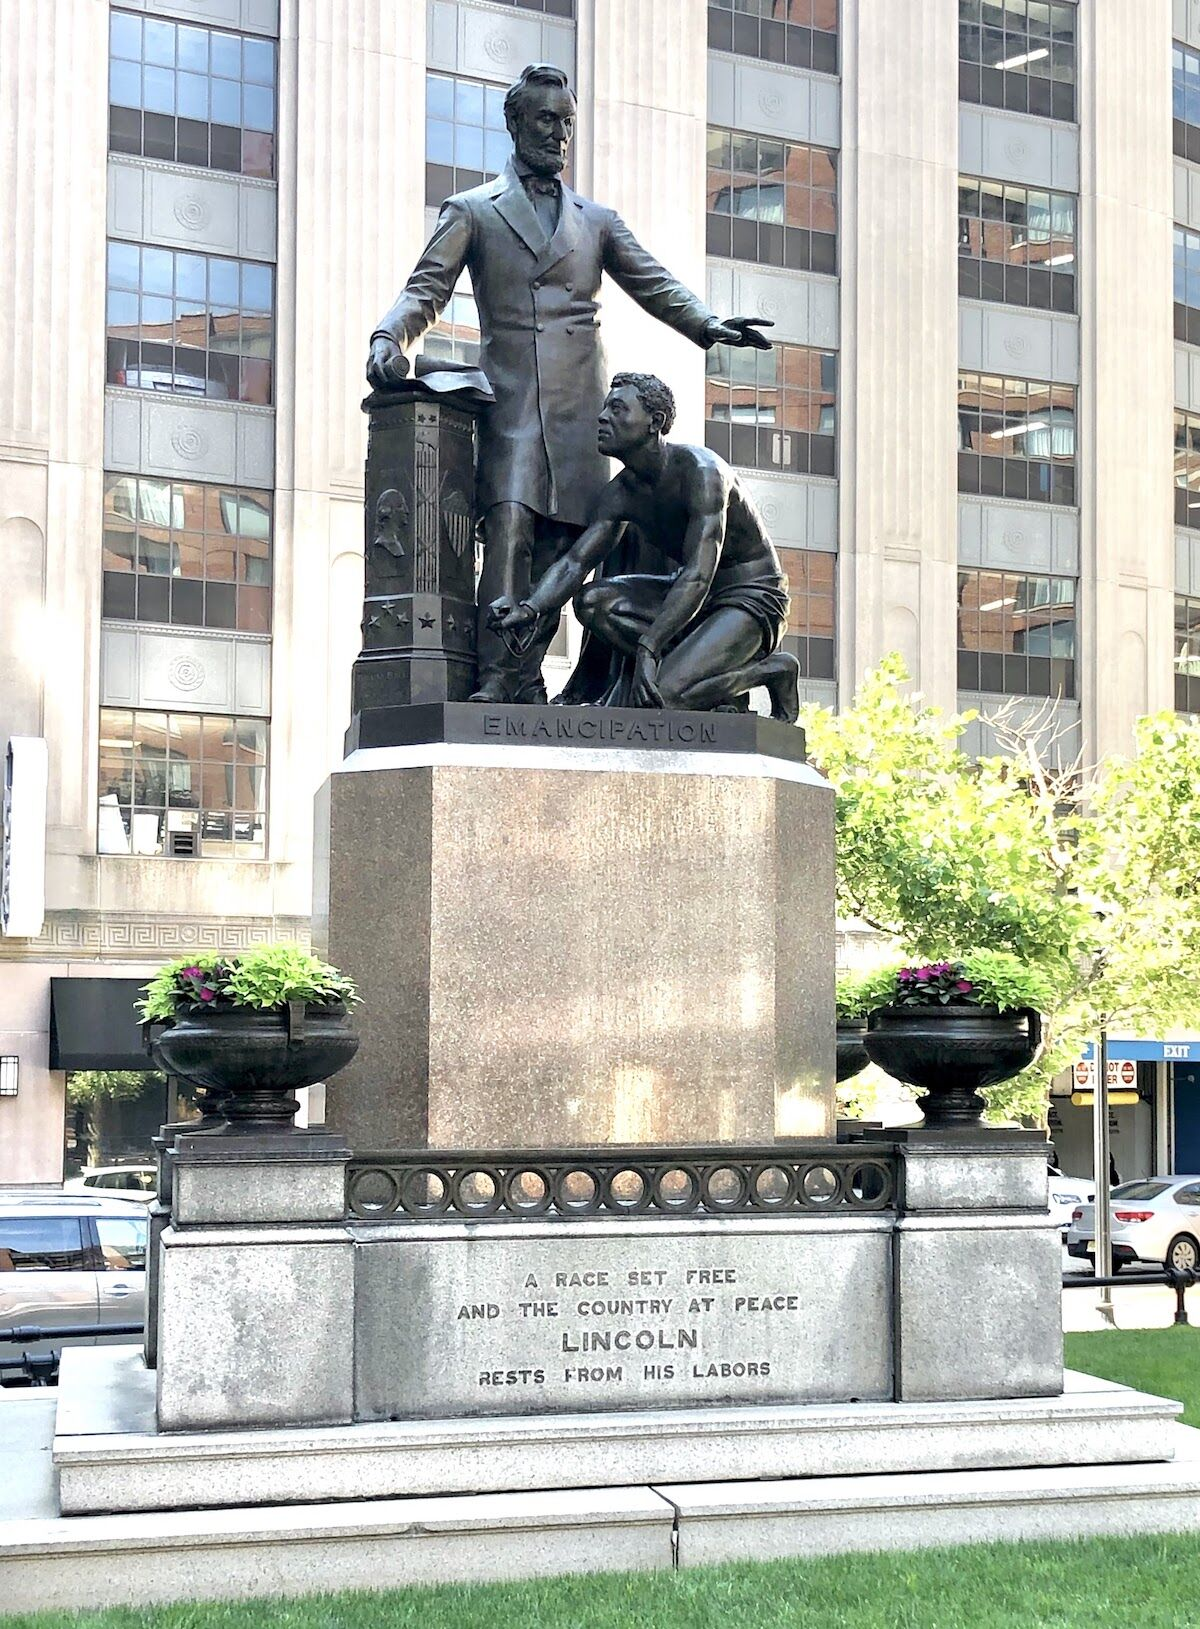 The Emancipation Group, a copy of a statue in Washington D.C. created by Thomas Ball. Photo courtesy of the Boston Art Commission.